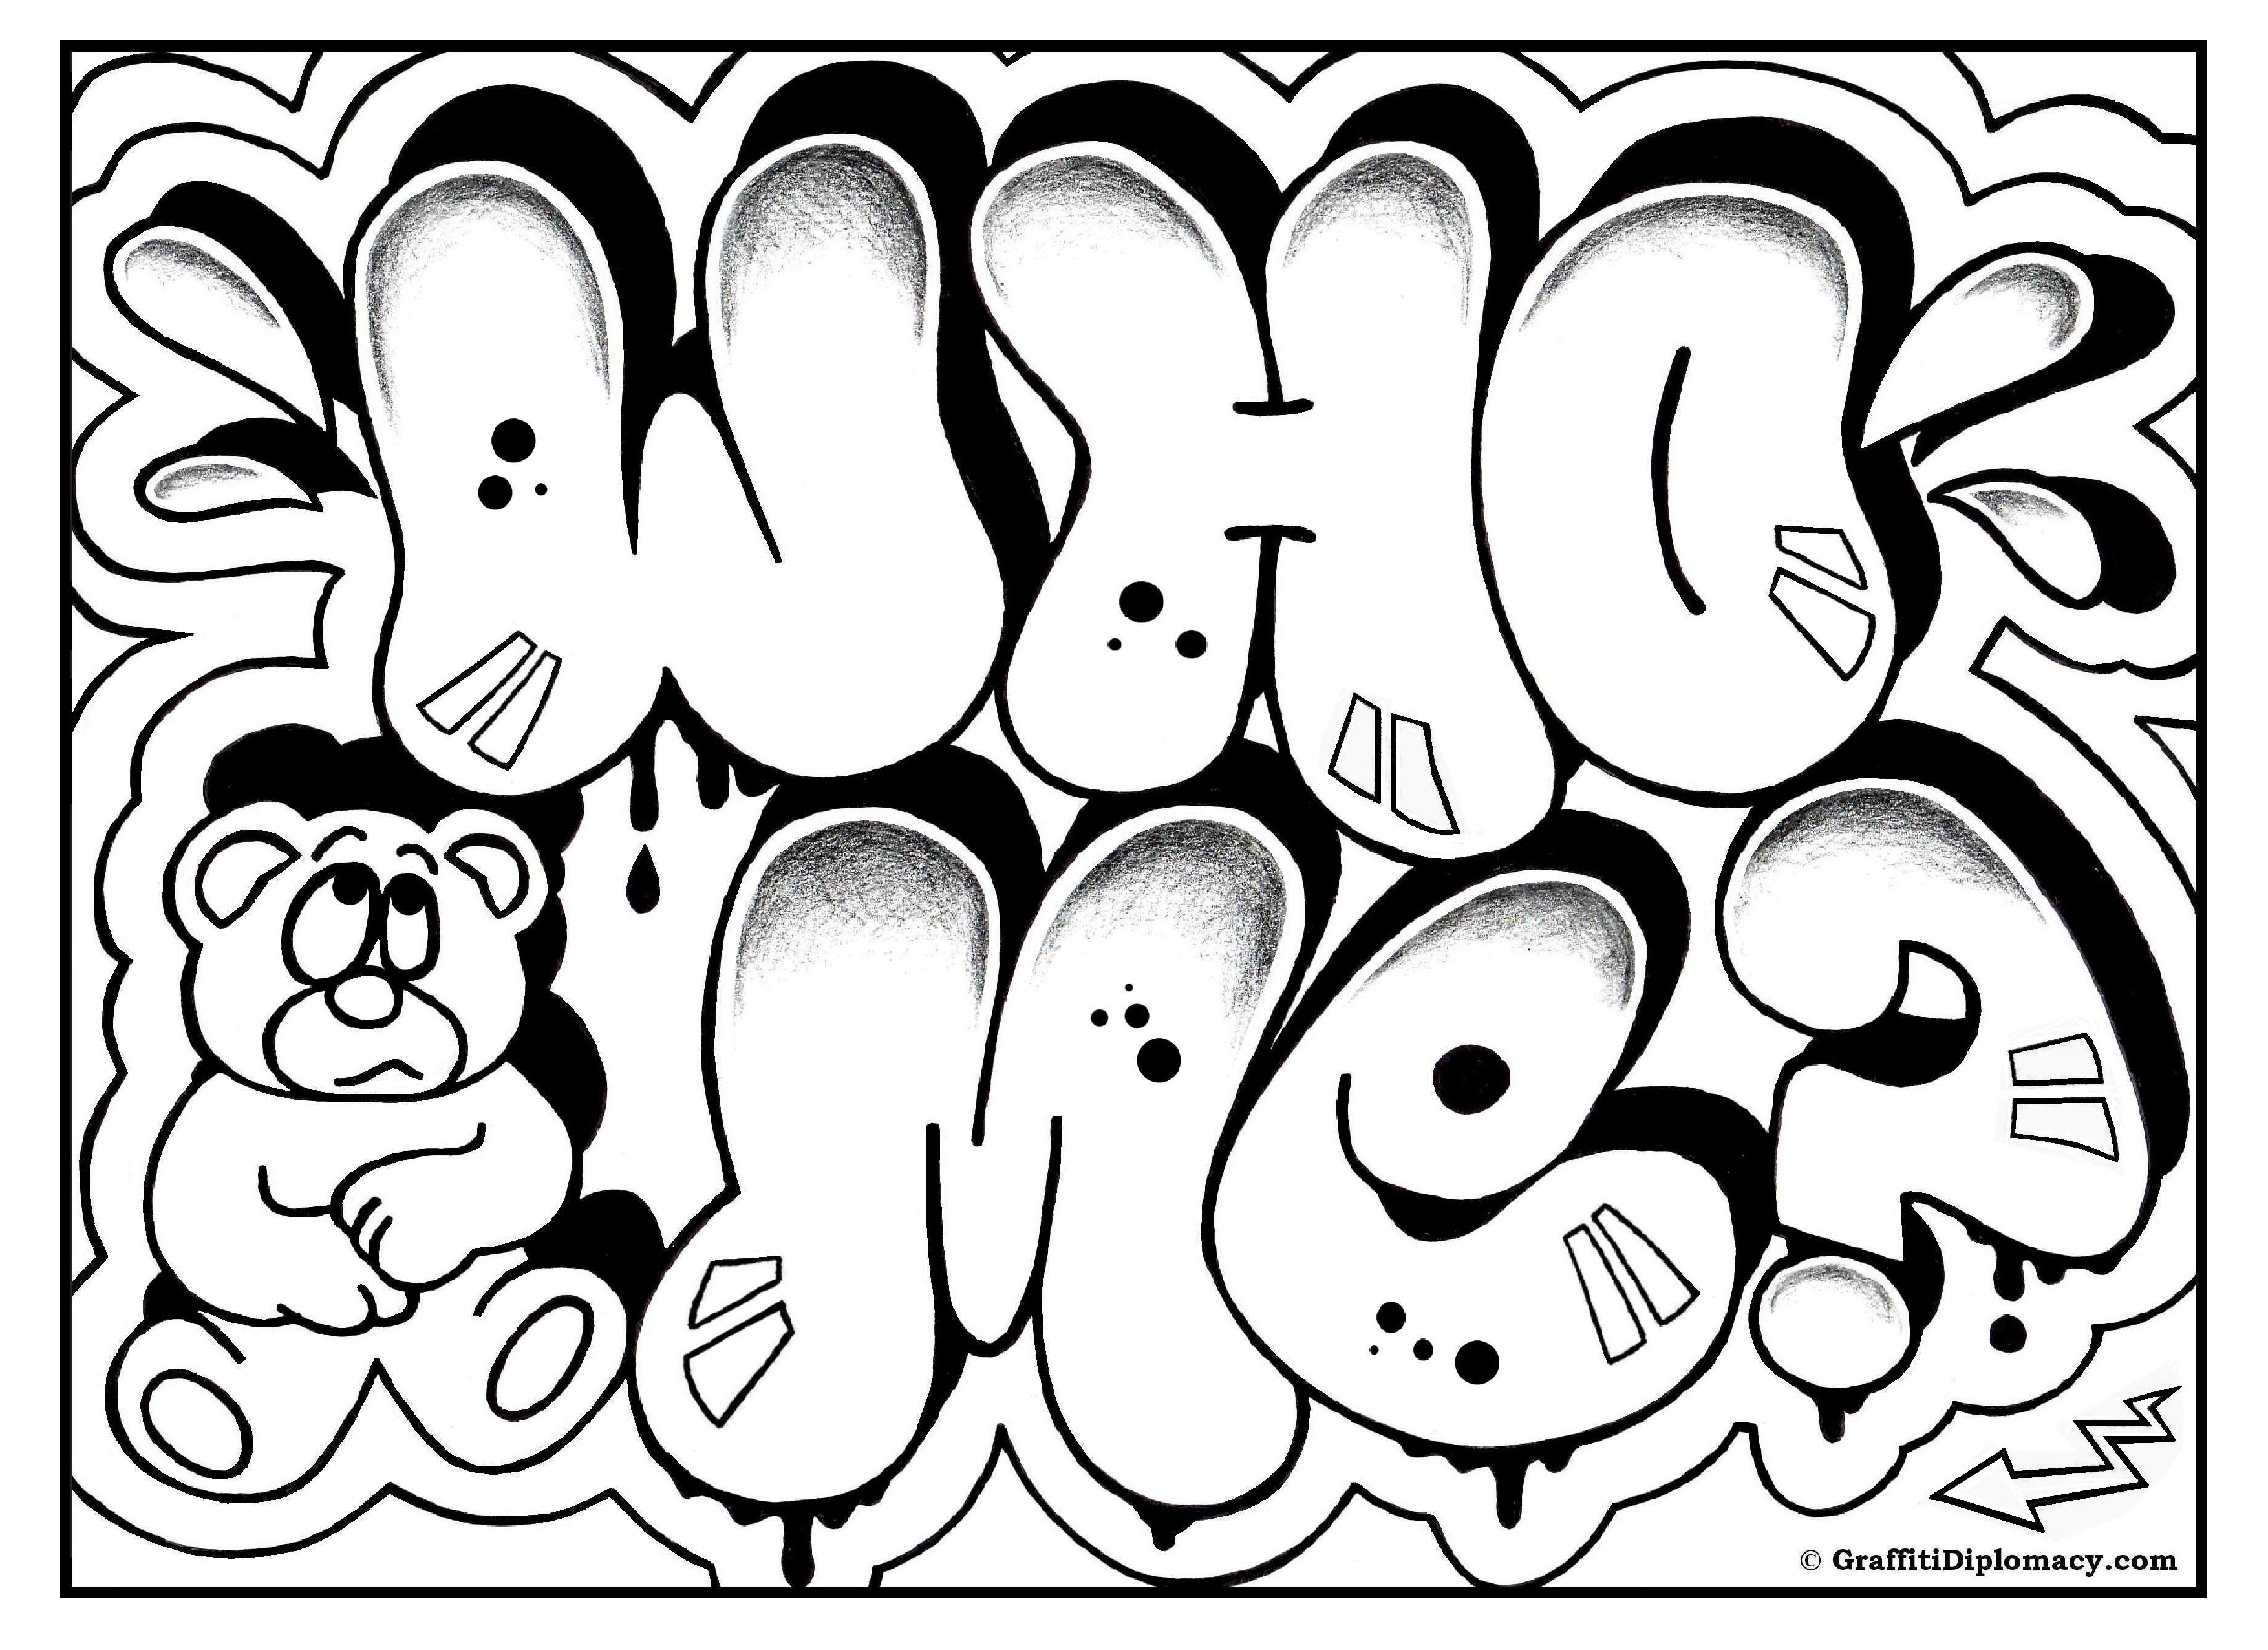 3508x2552 omg another graffiti coloring book of room signs